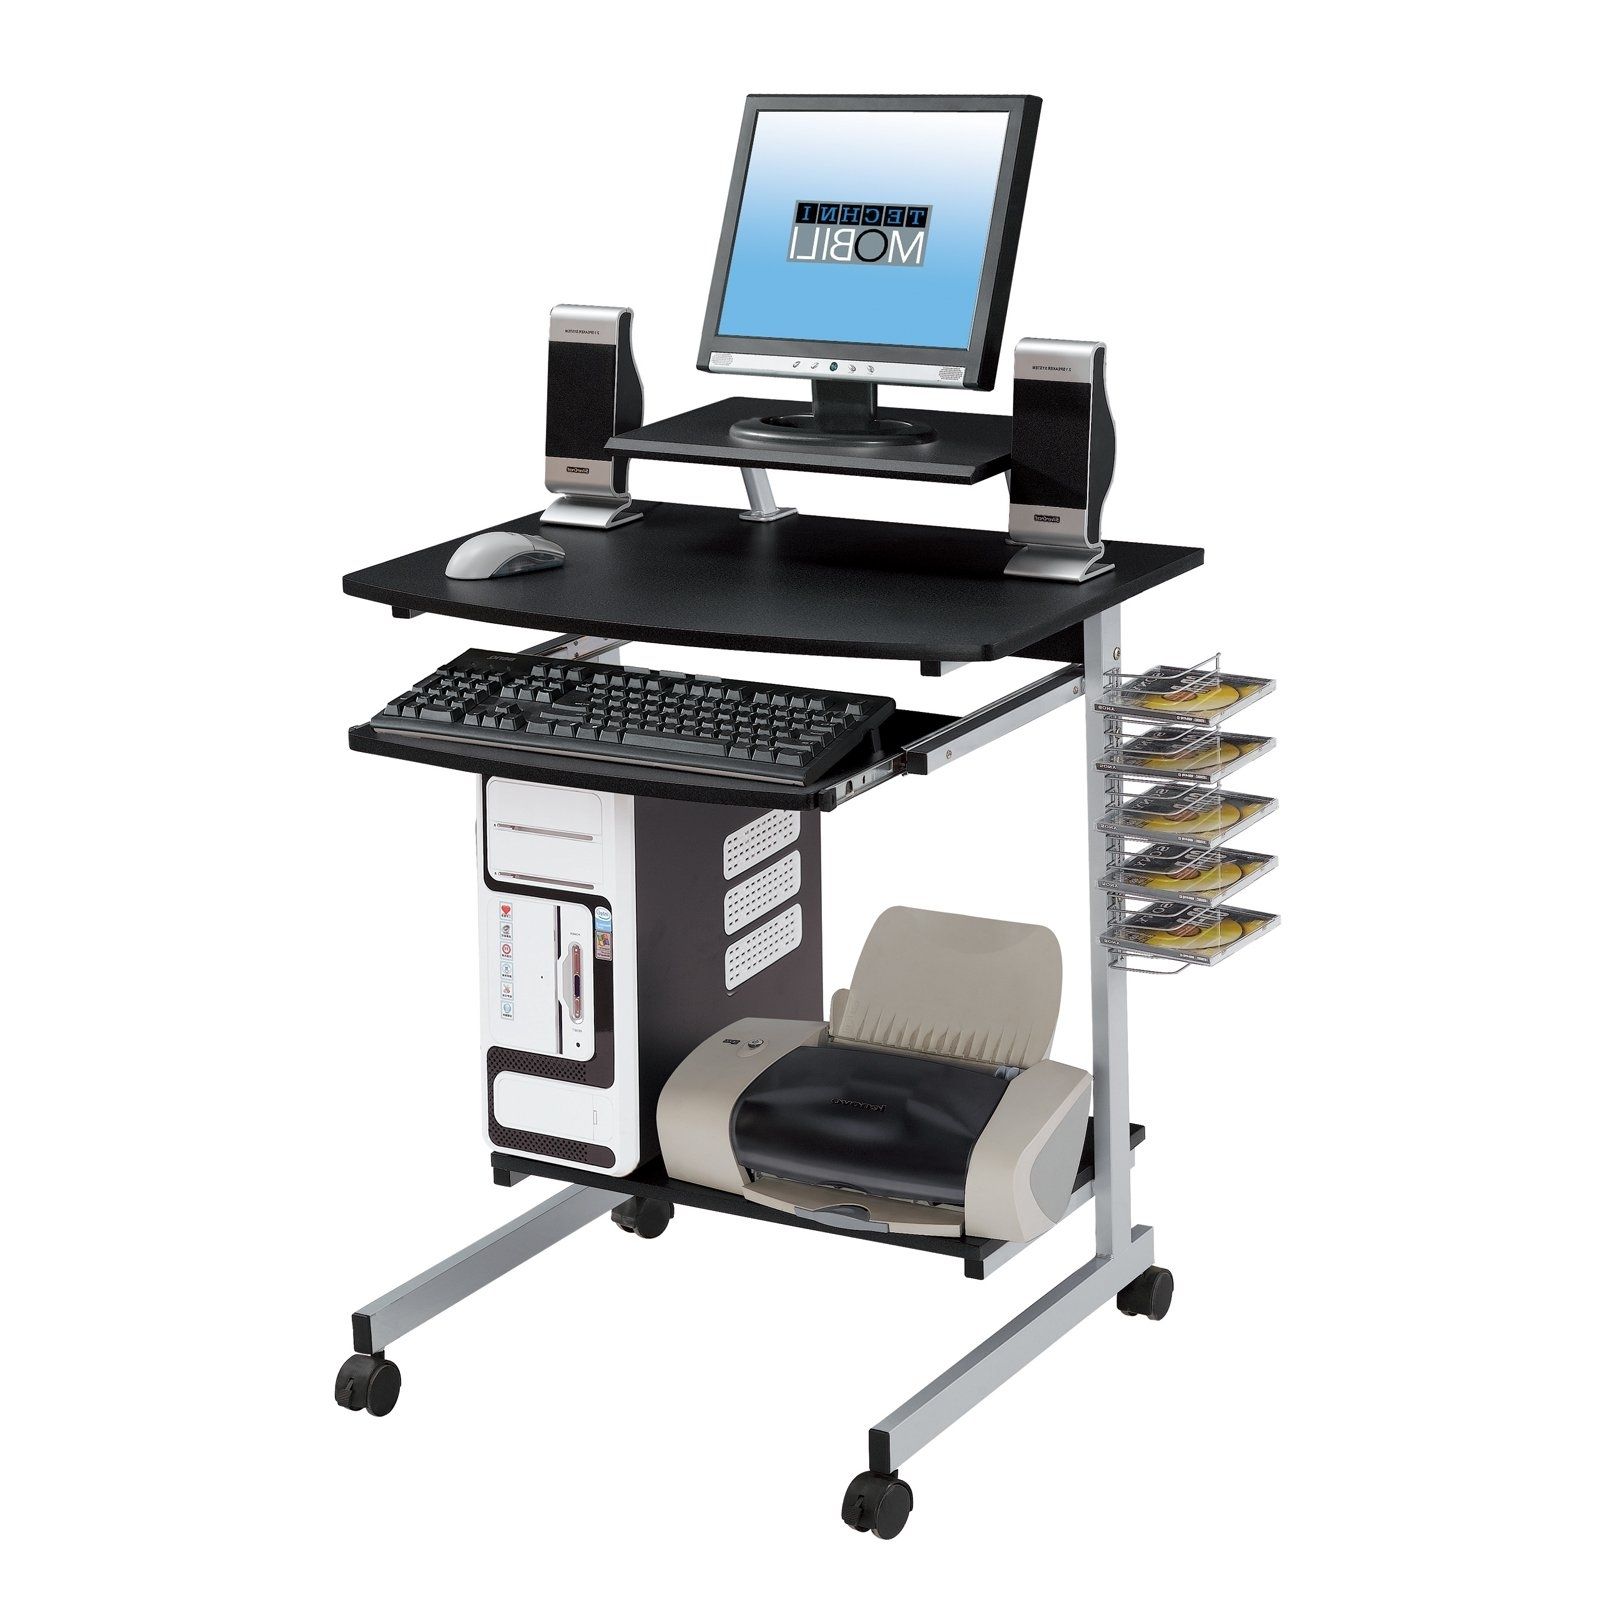 Portable Computer Desks Throughout Well Known Techni Mobili Rolling Computer Desk, Graphite – Walmart (View 12 of 20)